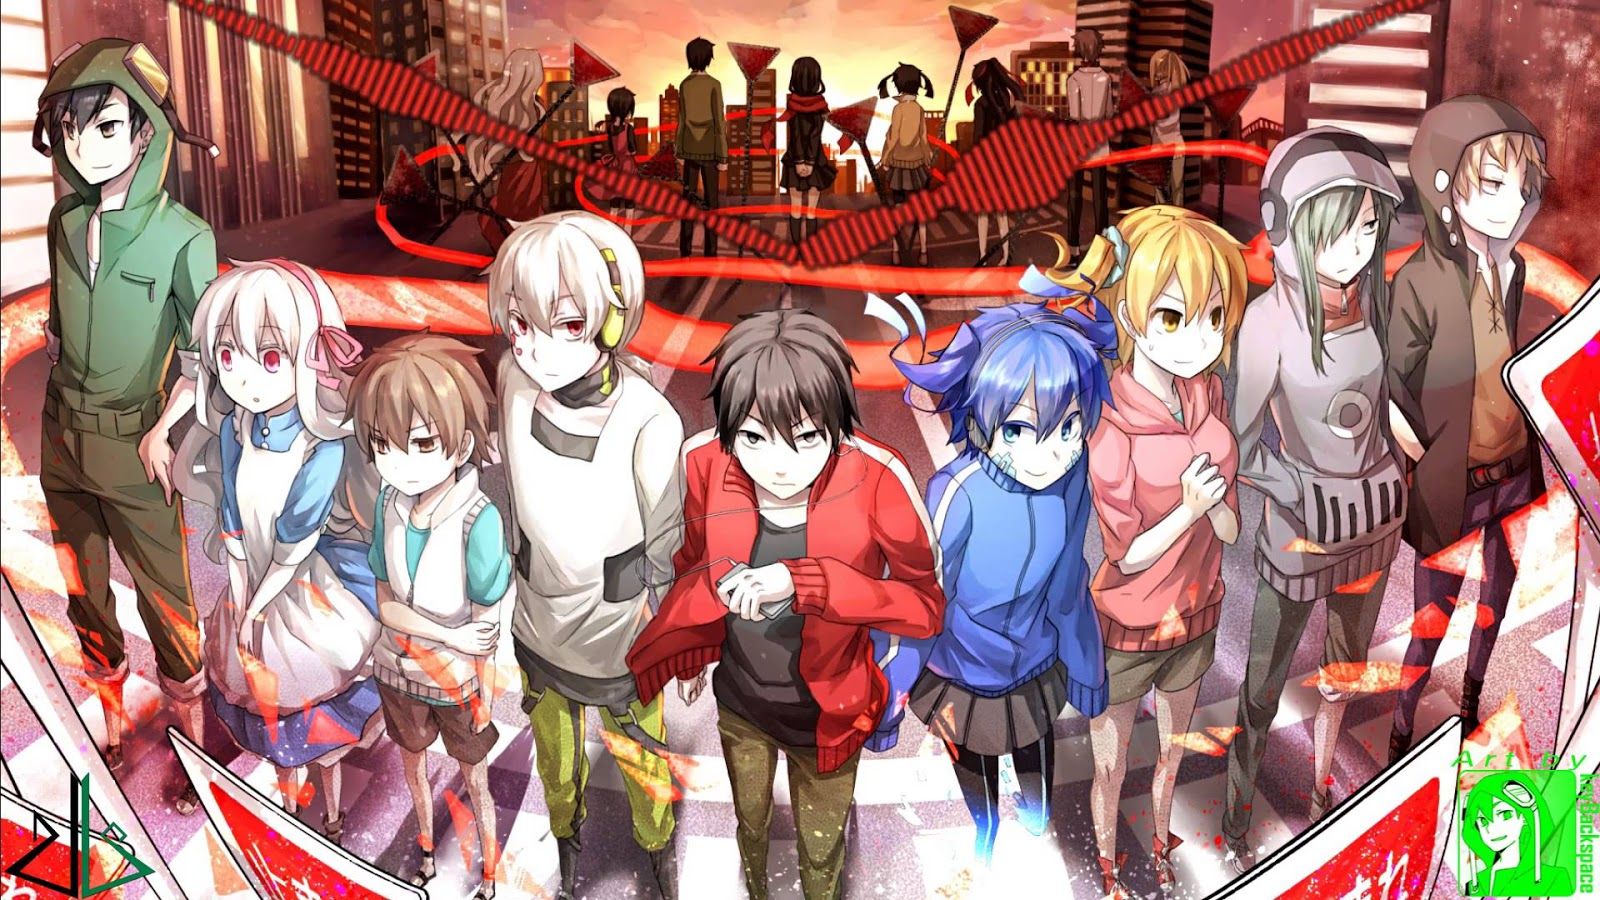 mekaku city actors 01 vostfr